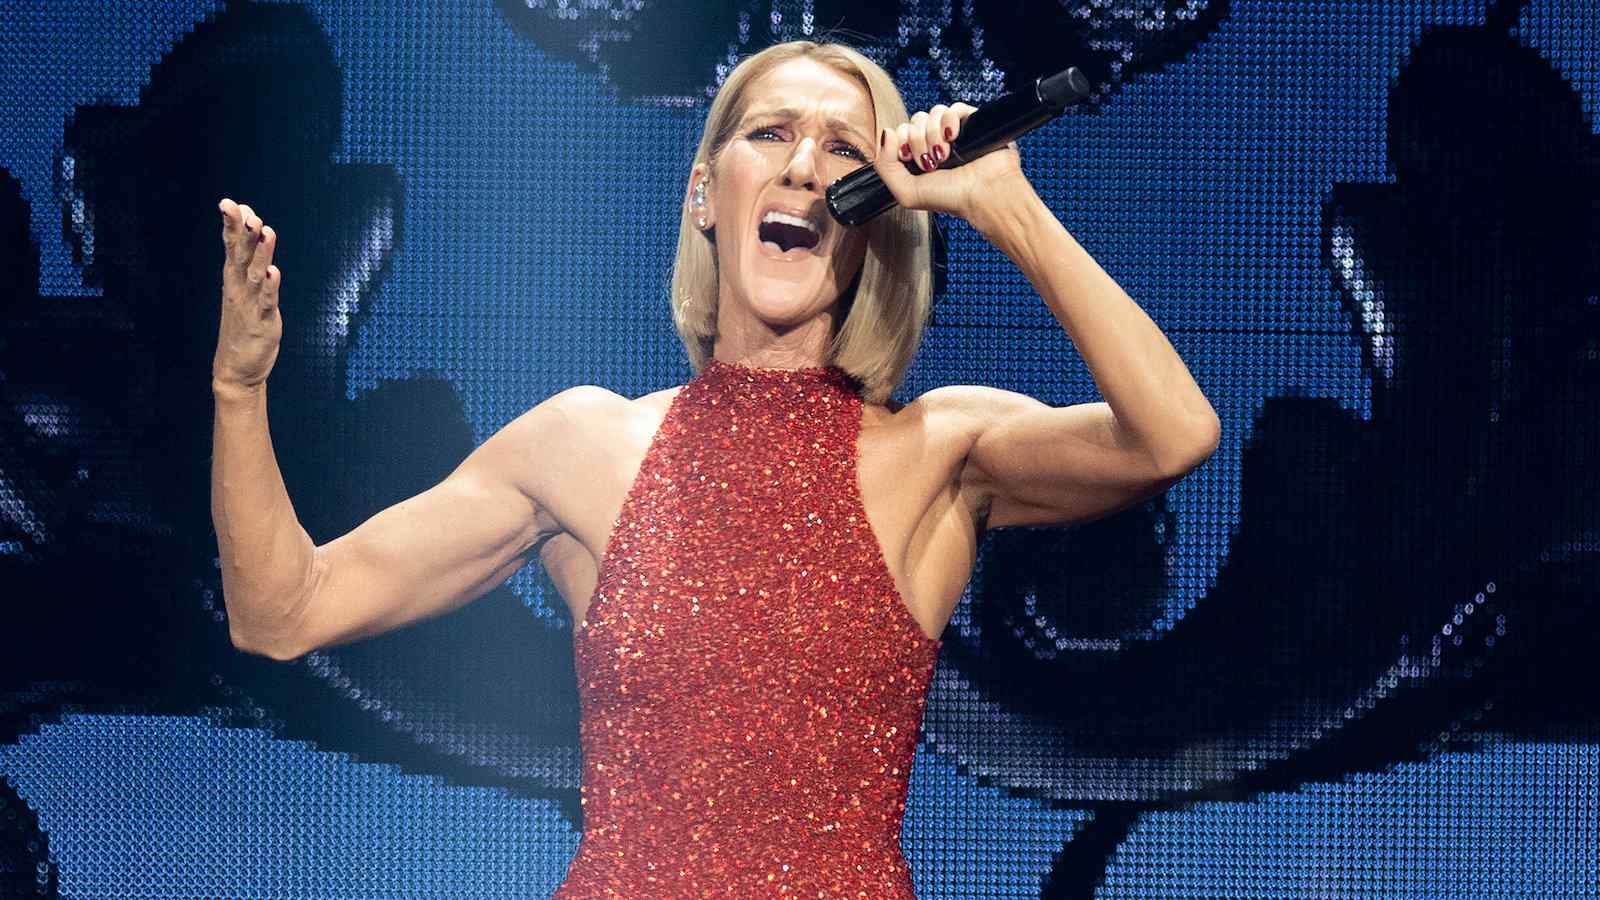 Celine Dion sings about loving a gay friend and shows us all she's a gay icon